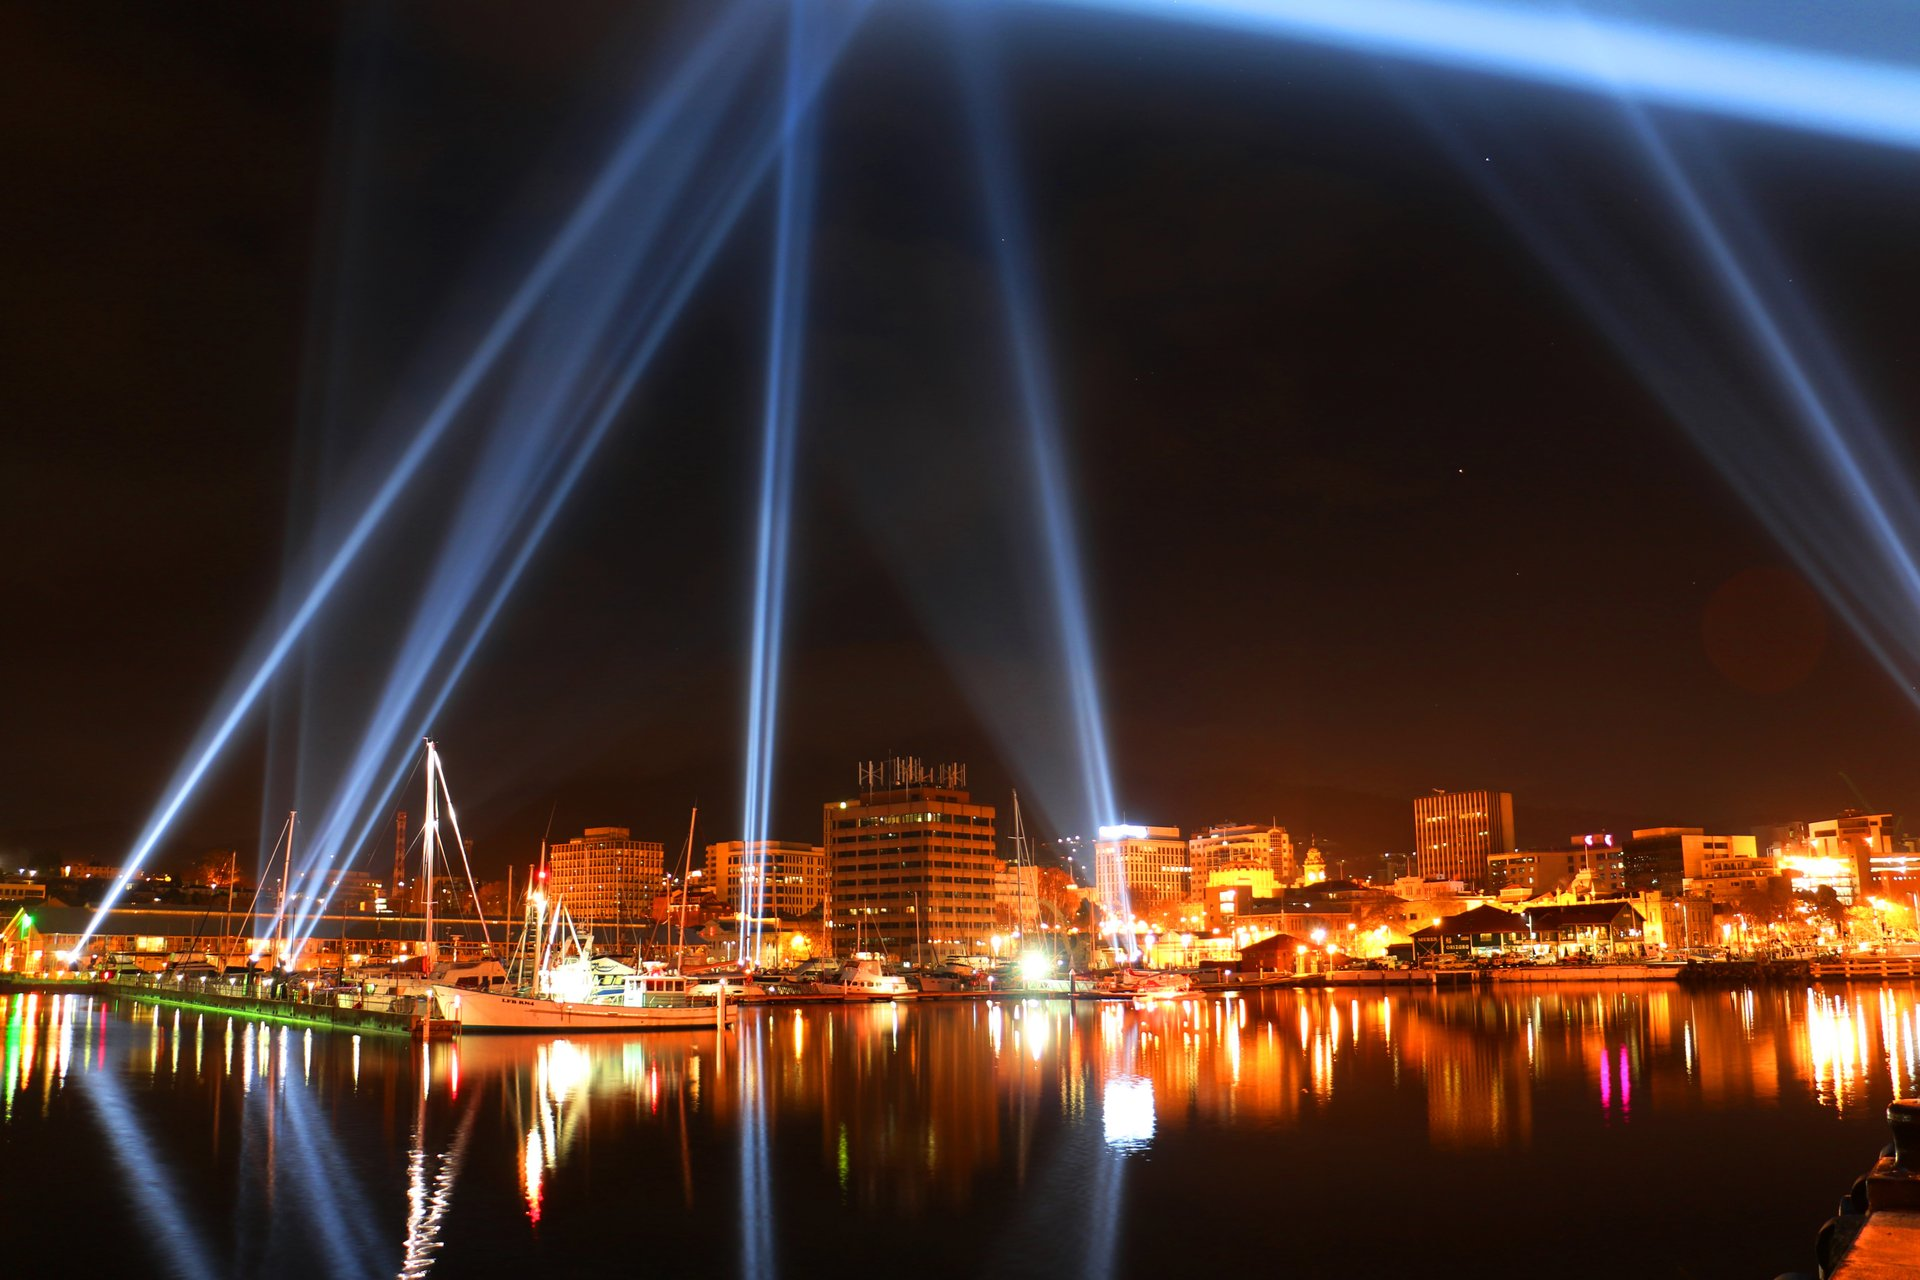 Part of the Dark MoFo Festival on the Hobart Waterfront 2020